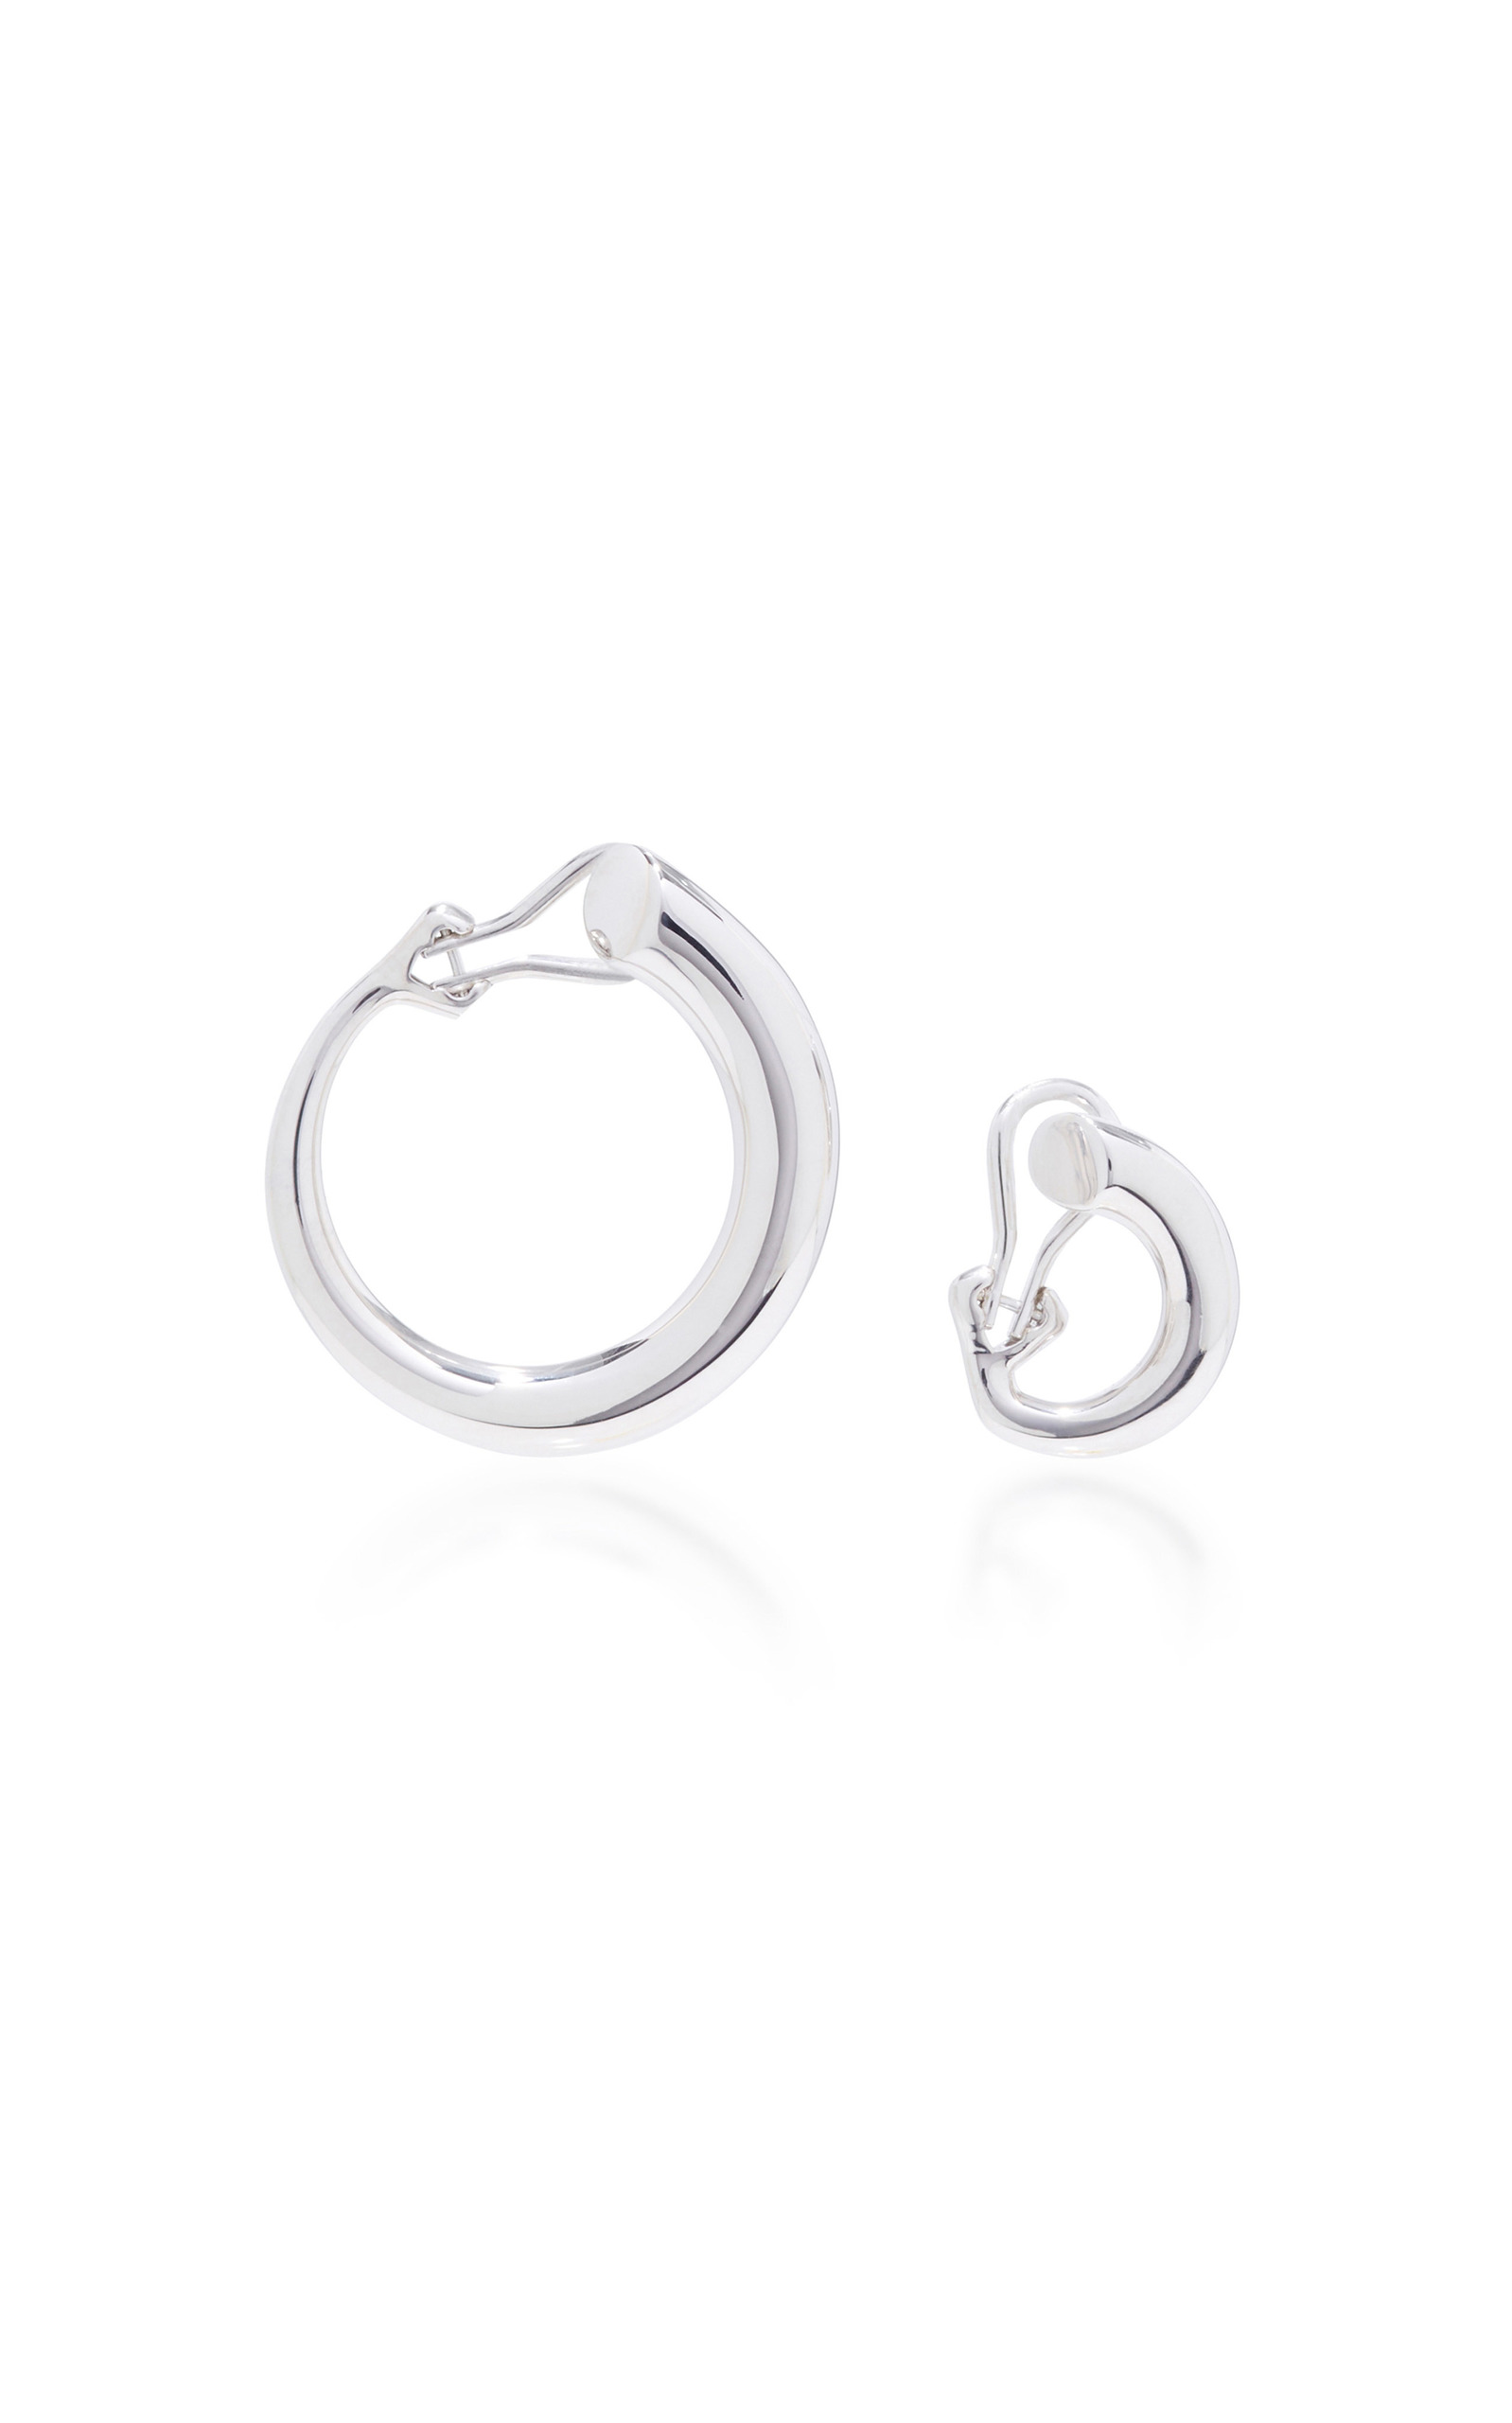 00c4130d7 Charlotte Chesnais Monie Small And Large Silver Clip Earrings In Metallic